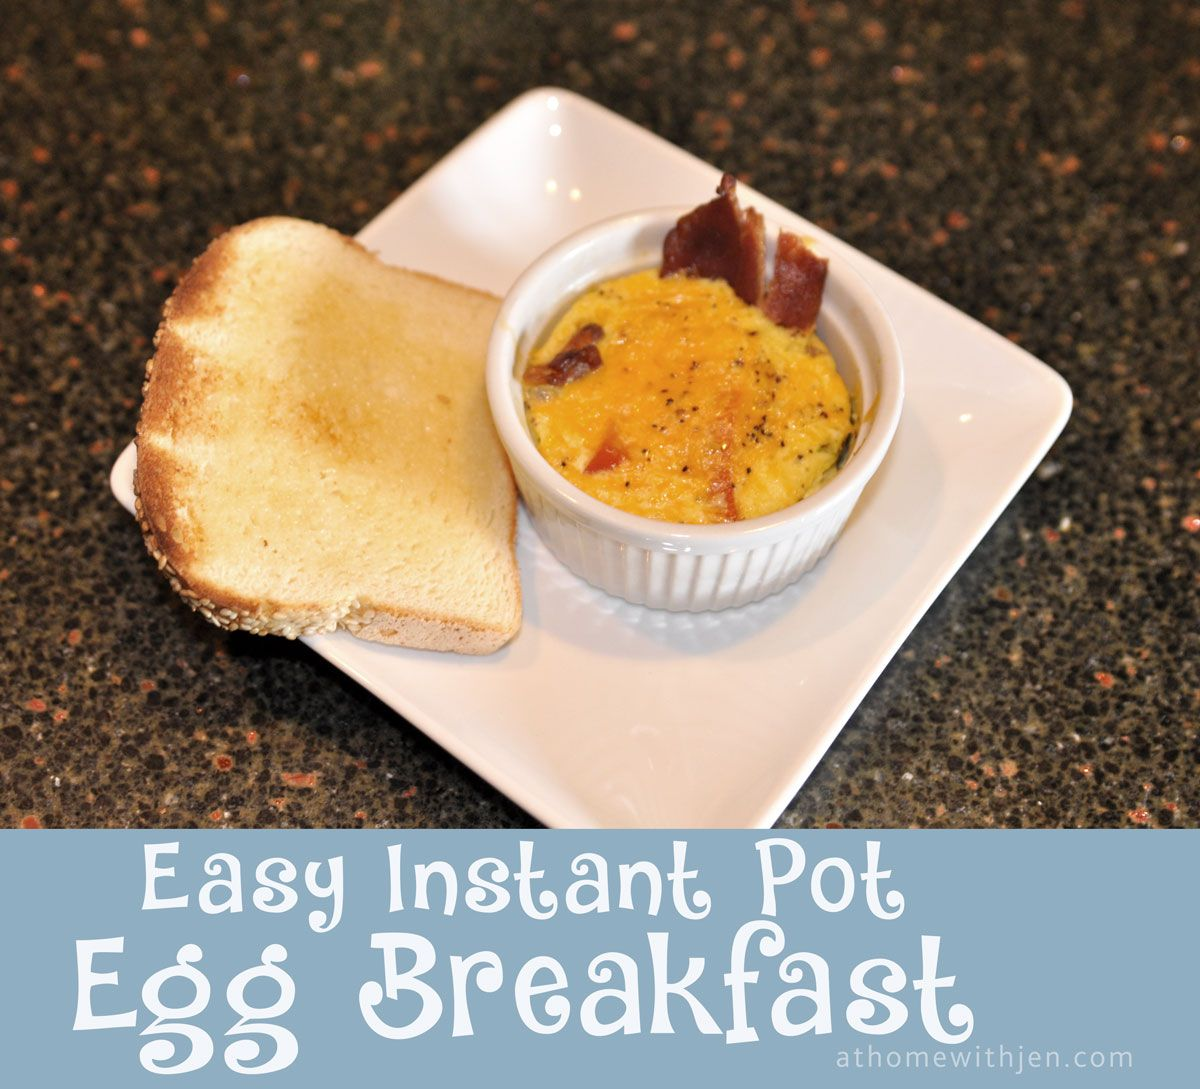 instant-pot-egg-breakfast